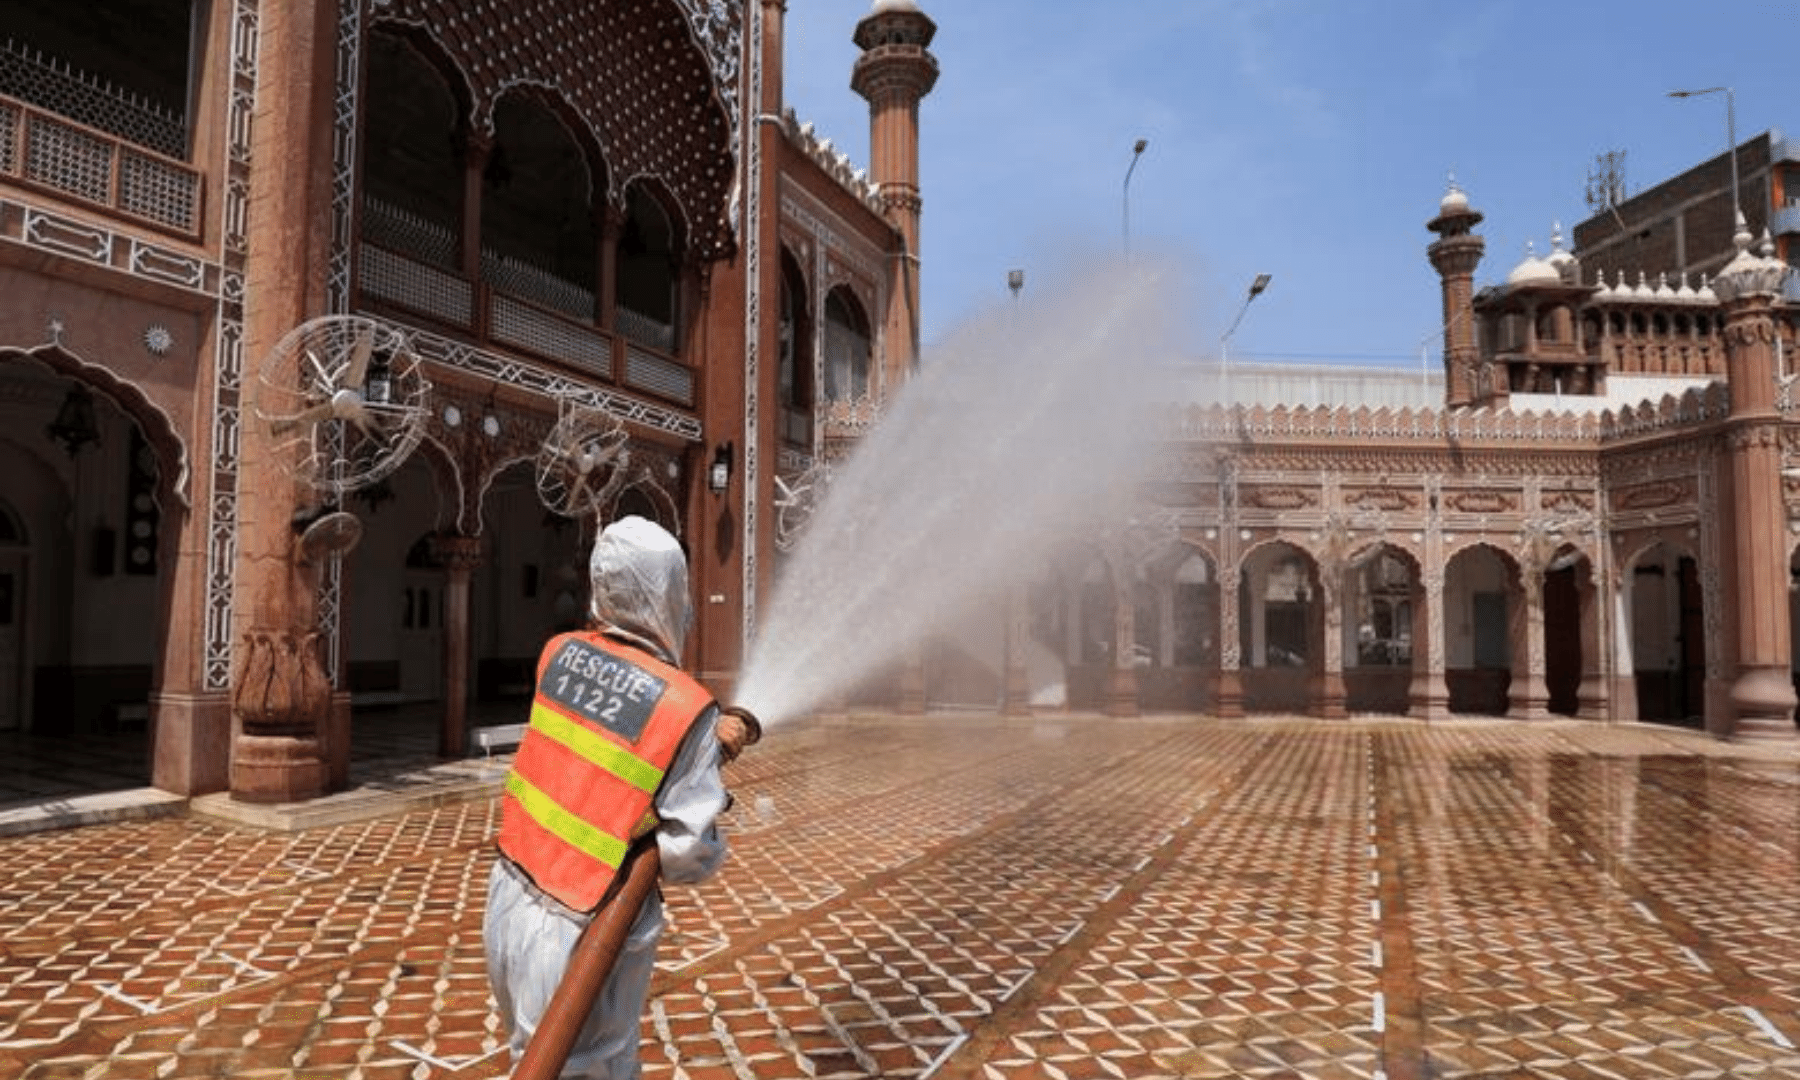 A worker sprays disinfectant to sanitise a mosque ahead of Ramazan in Peshawar on Tuesday. — Reuters